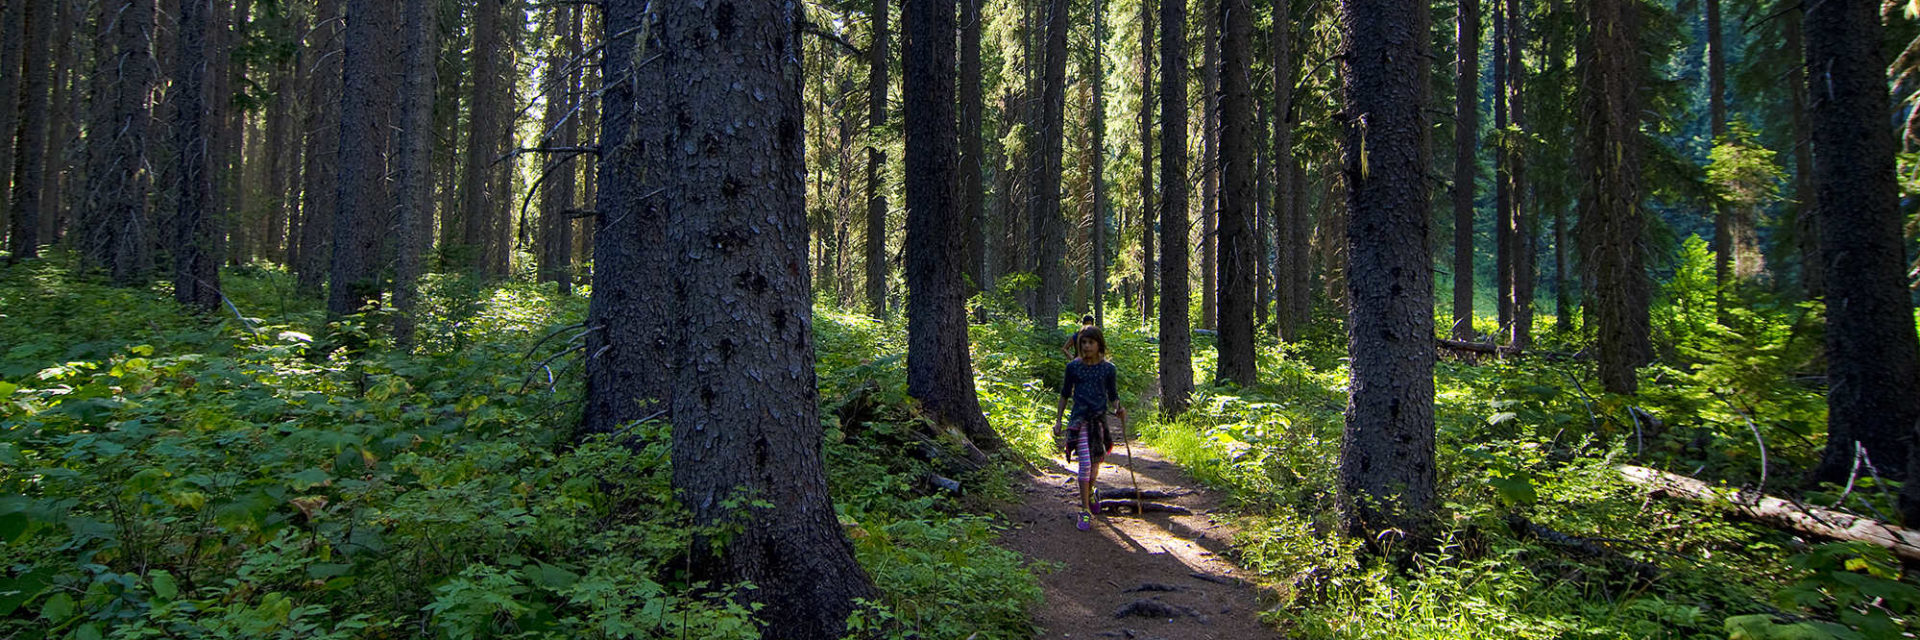 Hiking the Similkameen Valley